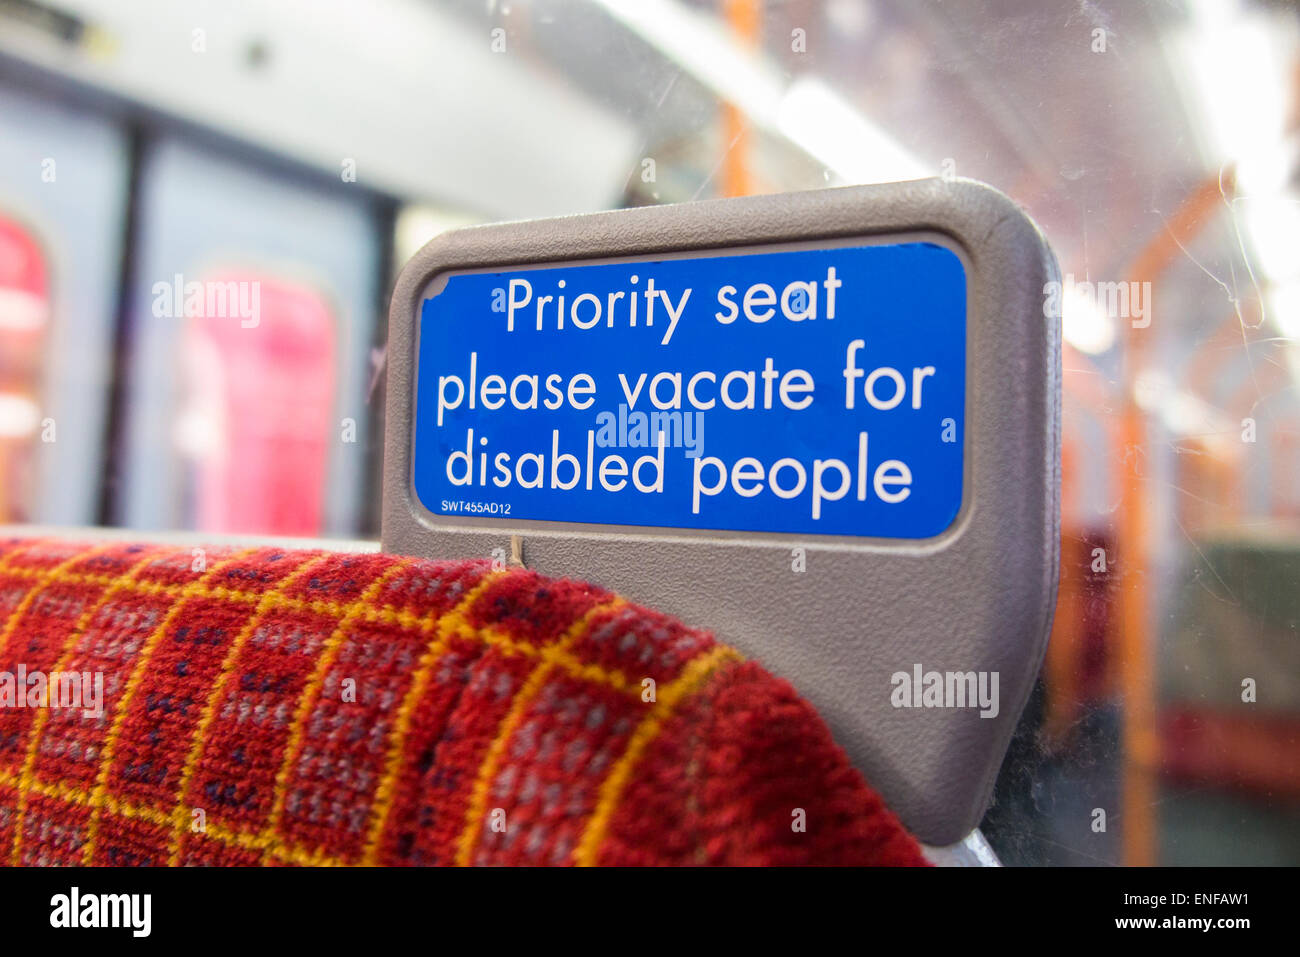 Sign on South West Trains railway carriage seat:  'Priority seat please vacate for disabled people' - Stock Image